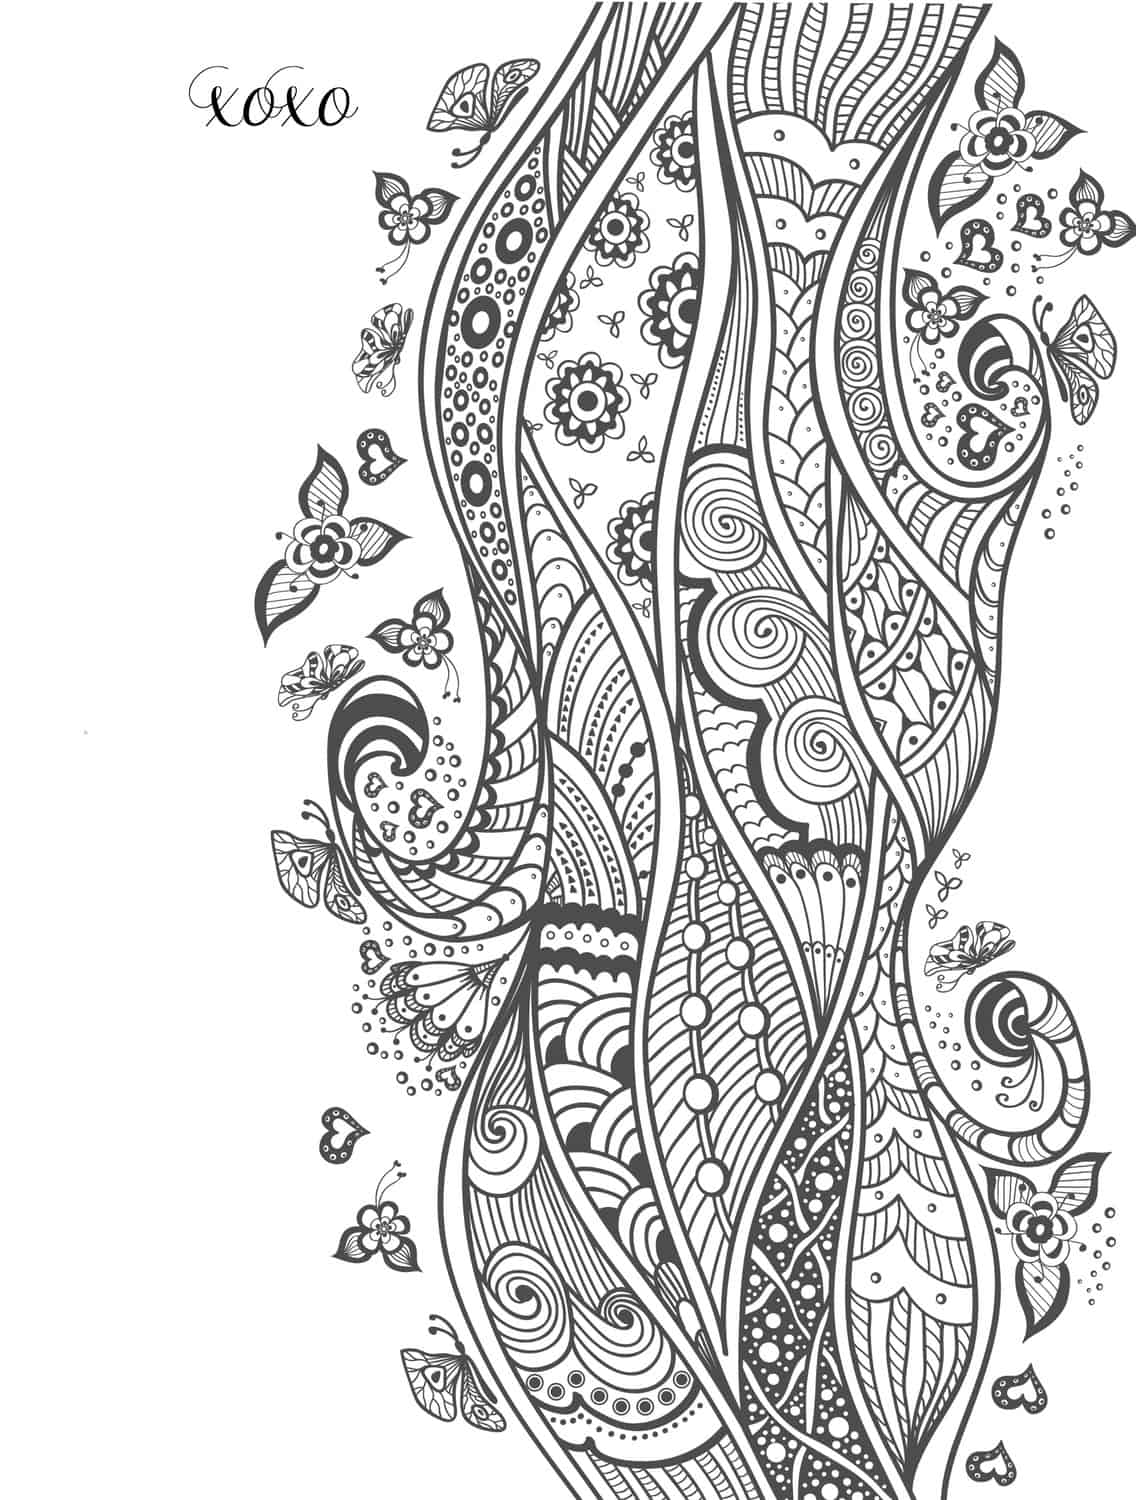 20 free printable valentines adult coloring pages - Download Coloring Pages For Adults